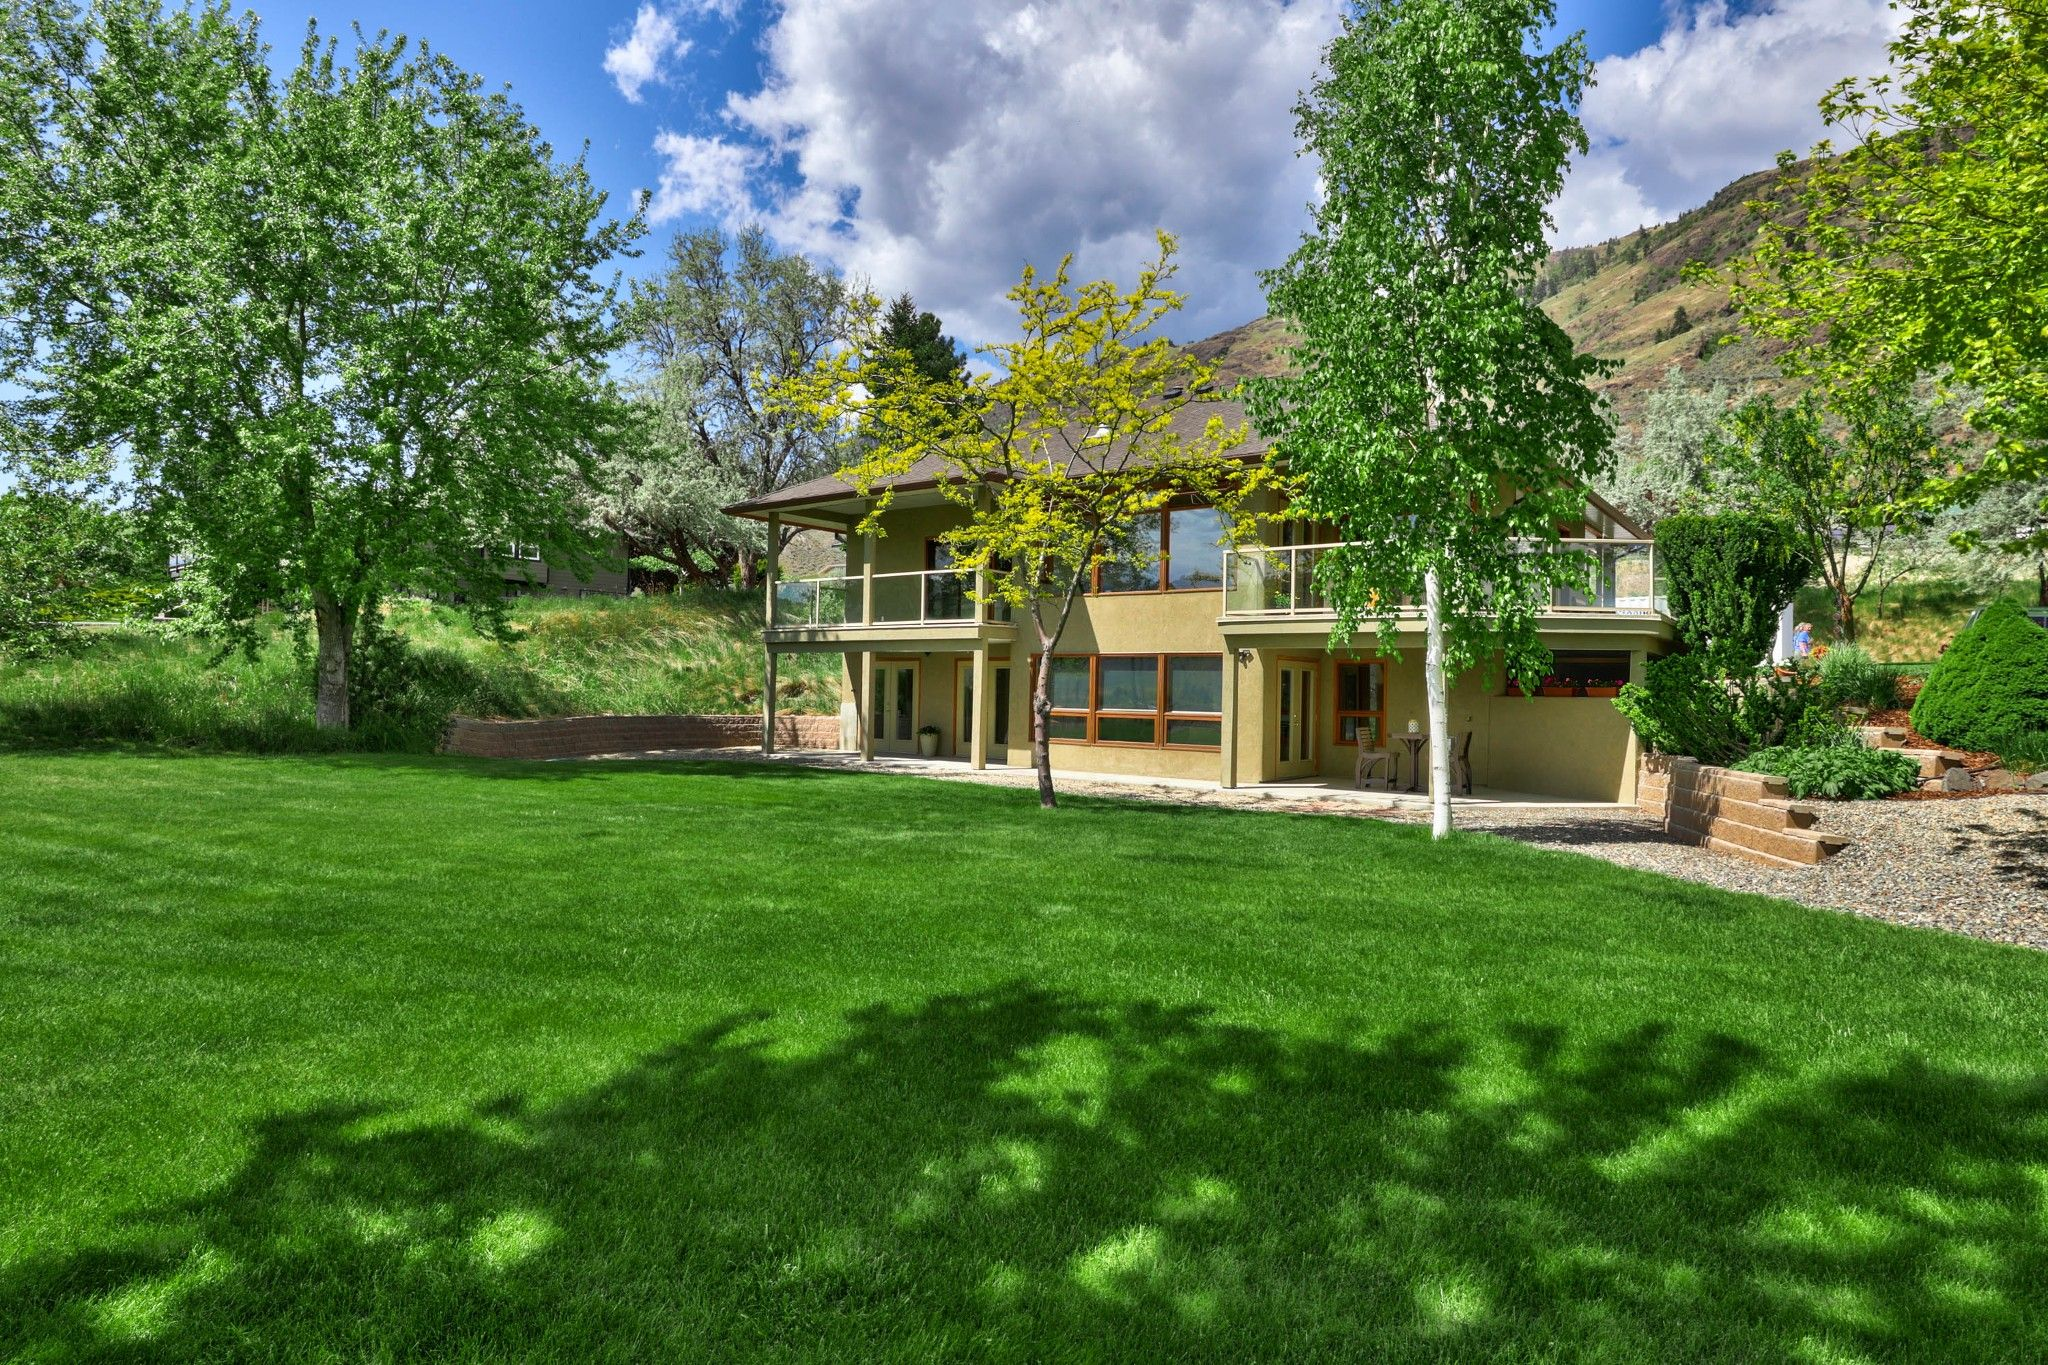 Photo 21: Photos: 3299 E Shuswap Road in Kamloops: South Thompson Valley House for sale : MLS®# 162162